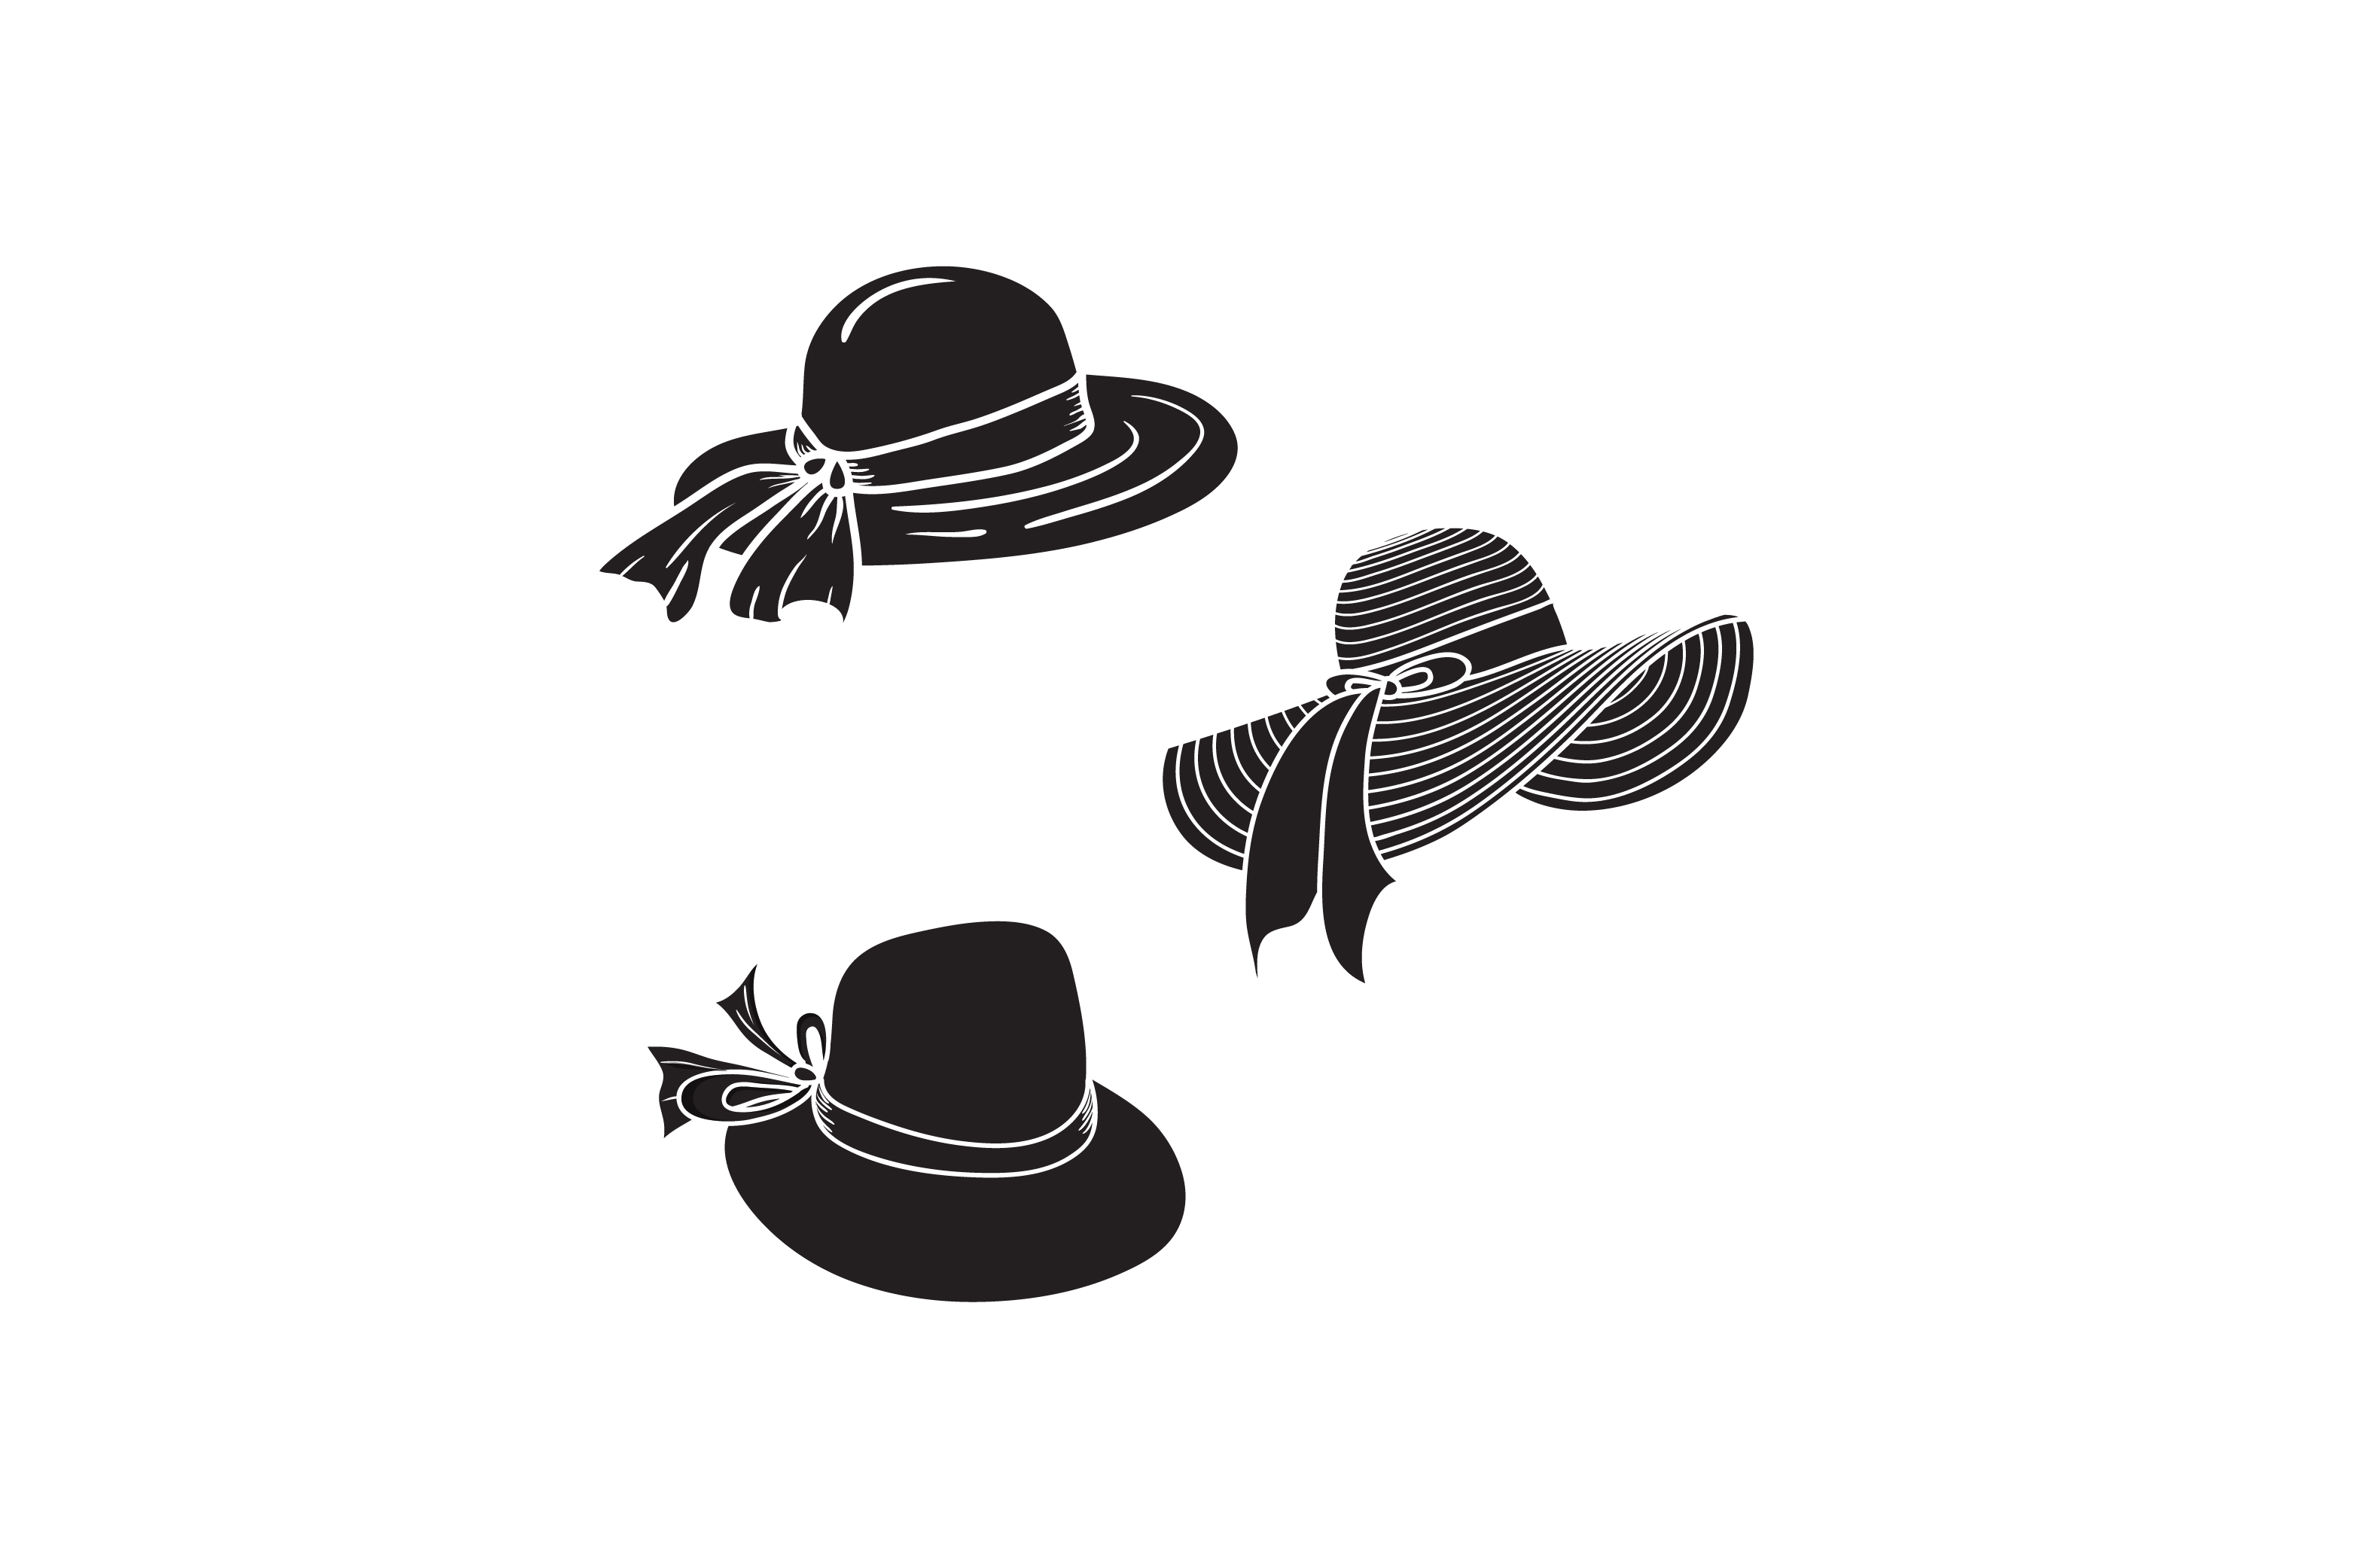 Download Free Silhouette Summer Hat Graphic By Sabavector Creative Fabrica for Cricut Explore, Silhouette and other cutting machines.